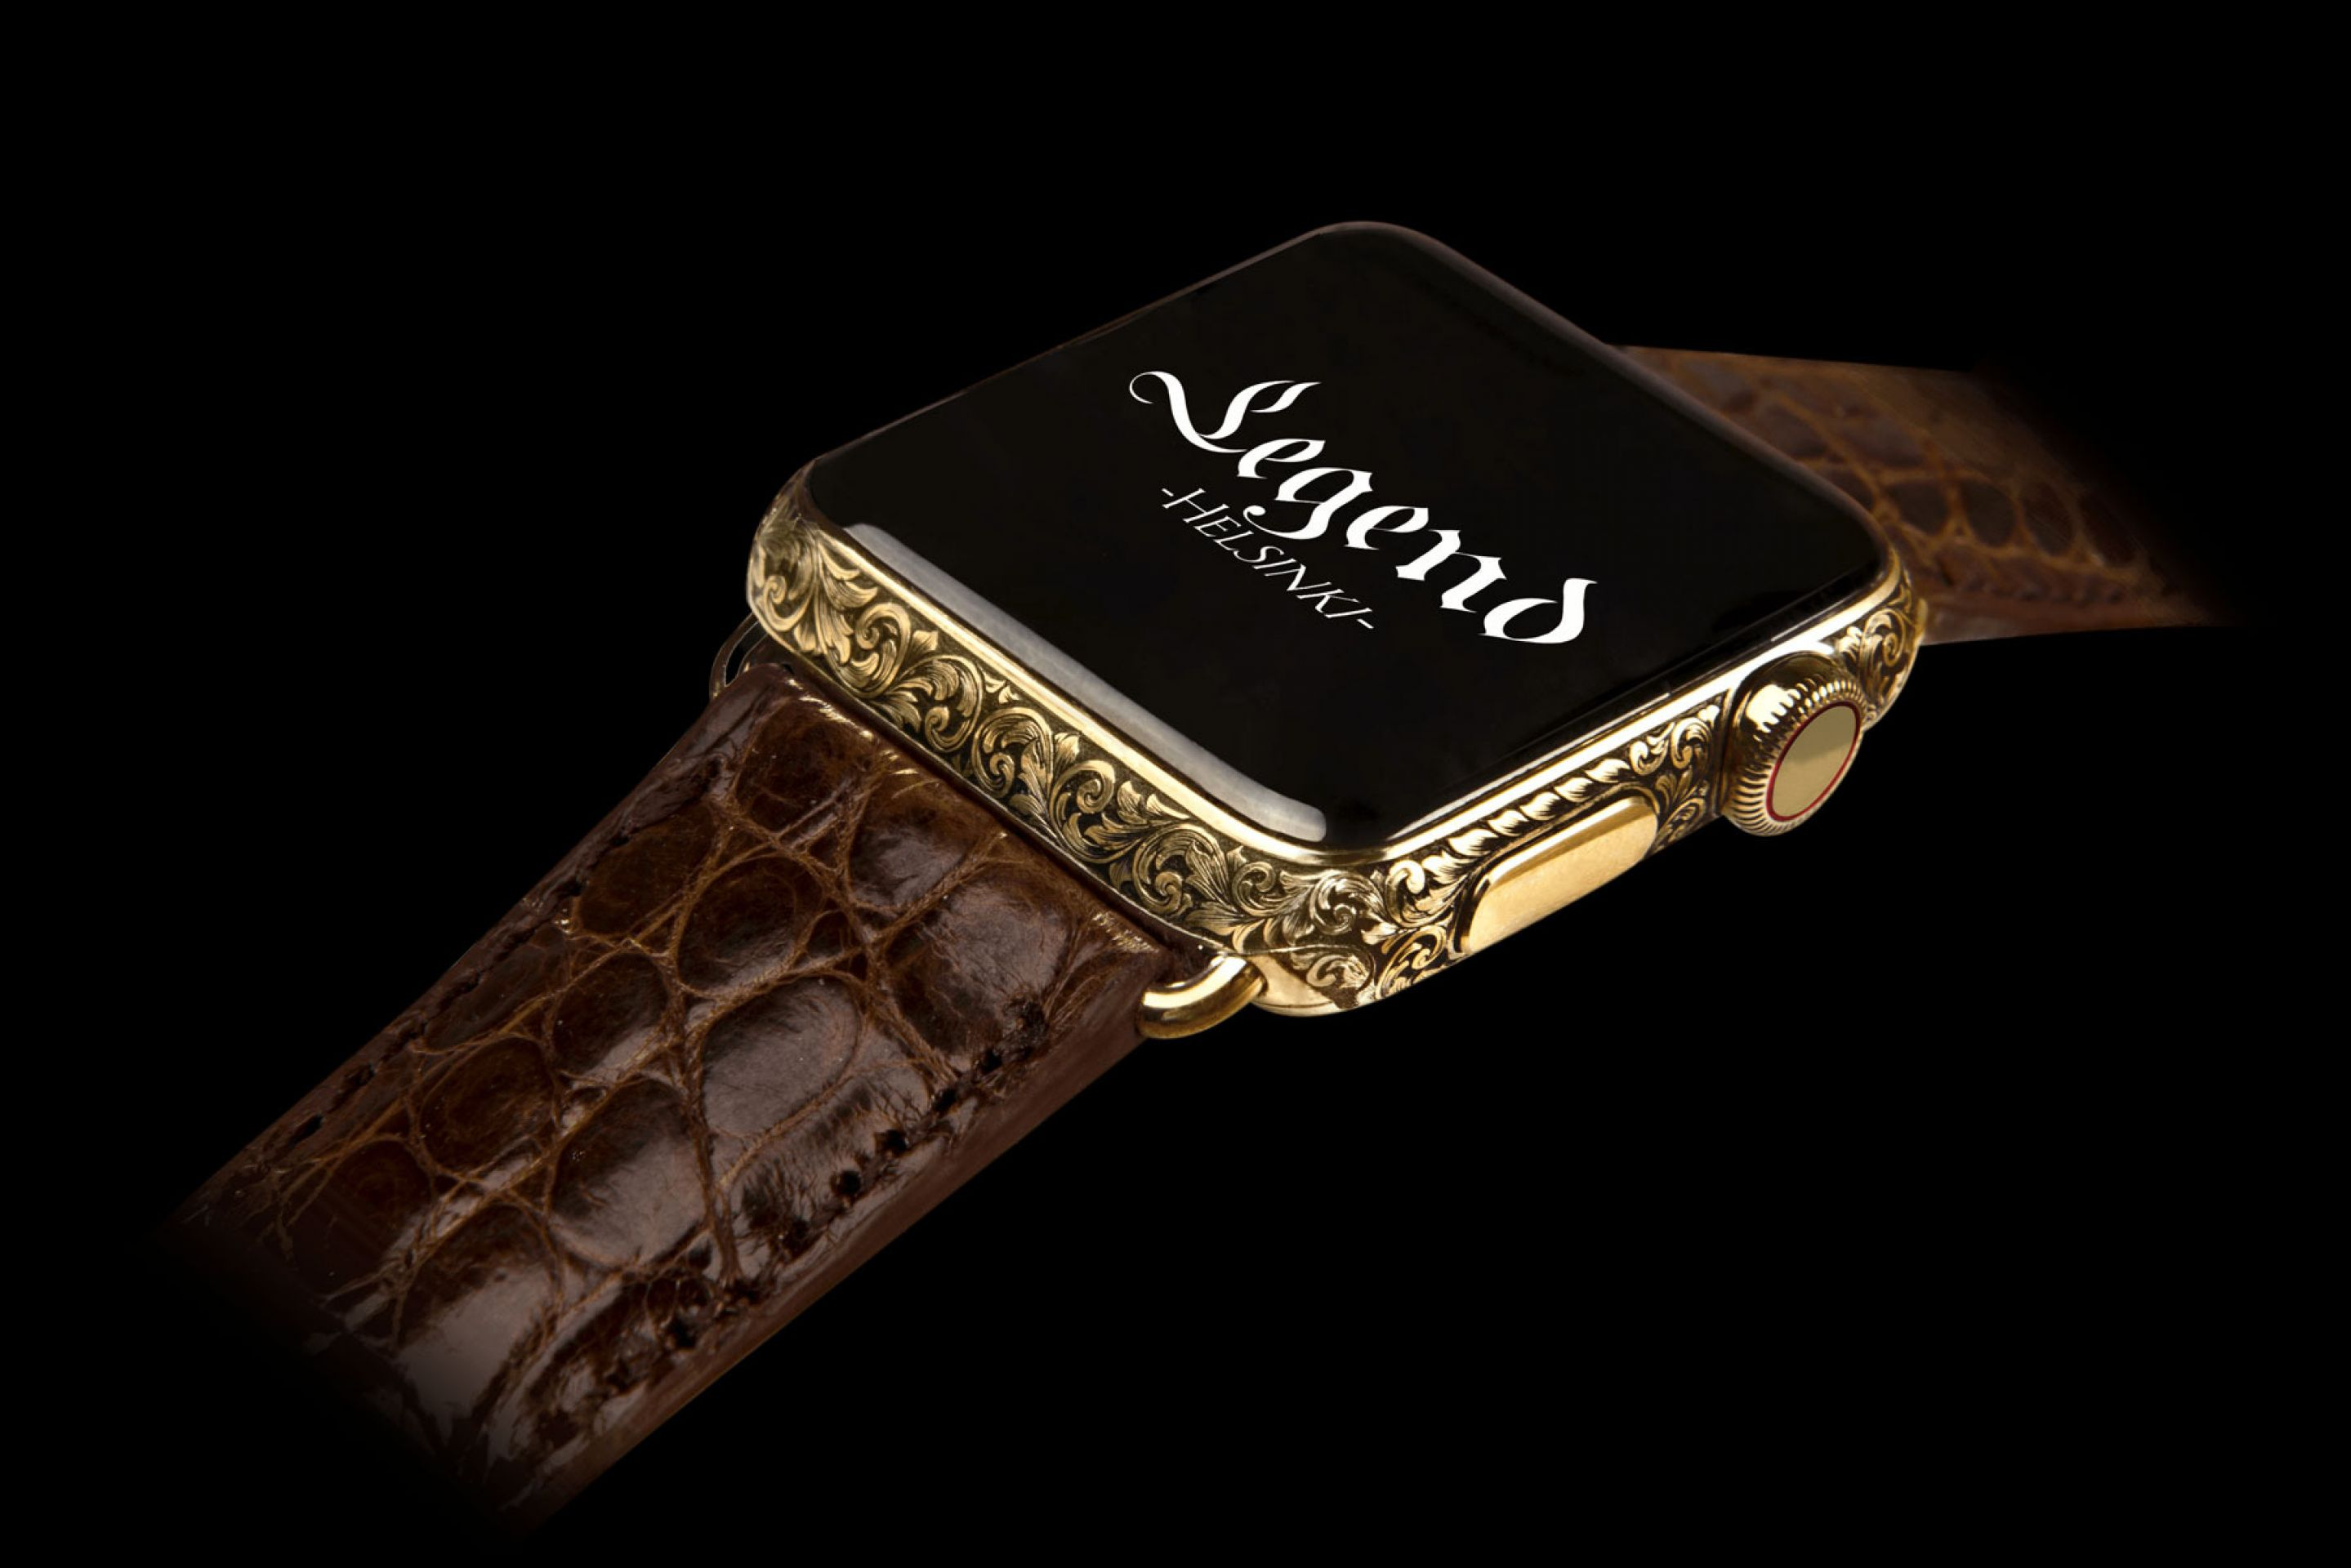 Luxury Apple Watch series 4 by Legend, 24k gold hand engraved case - Tempo